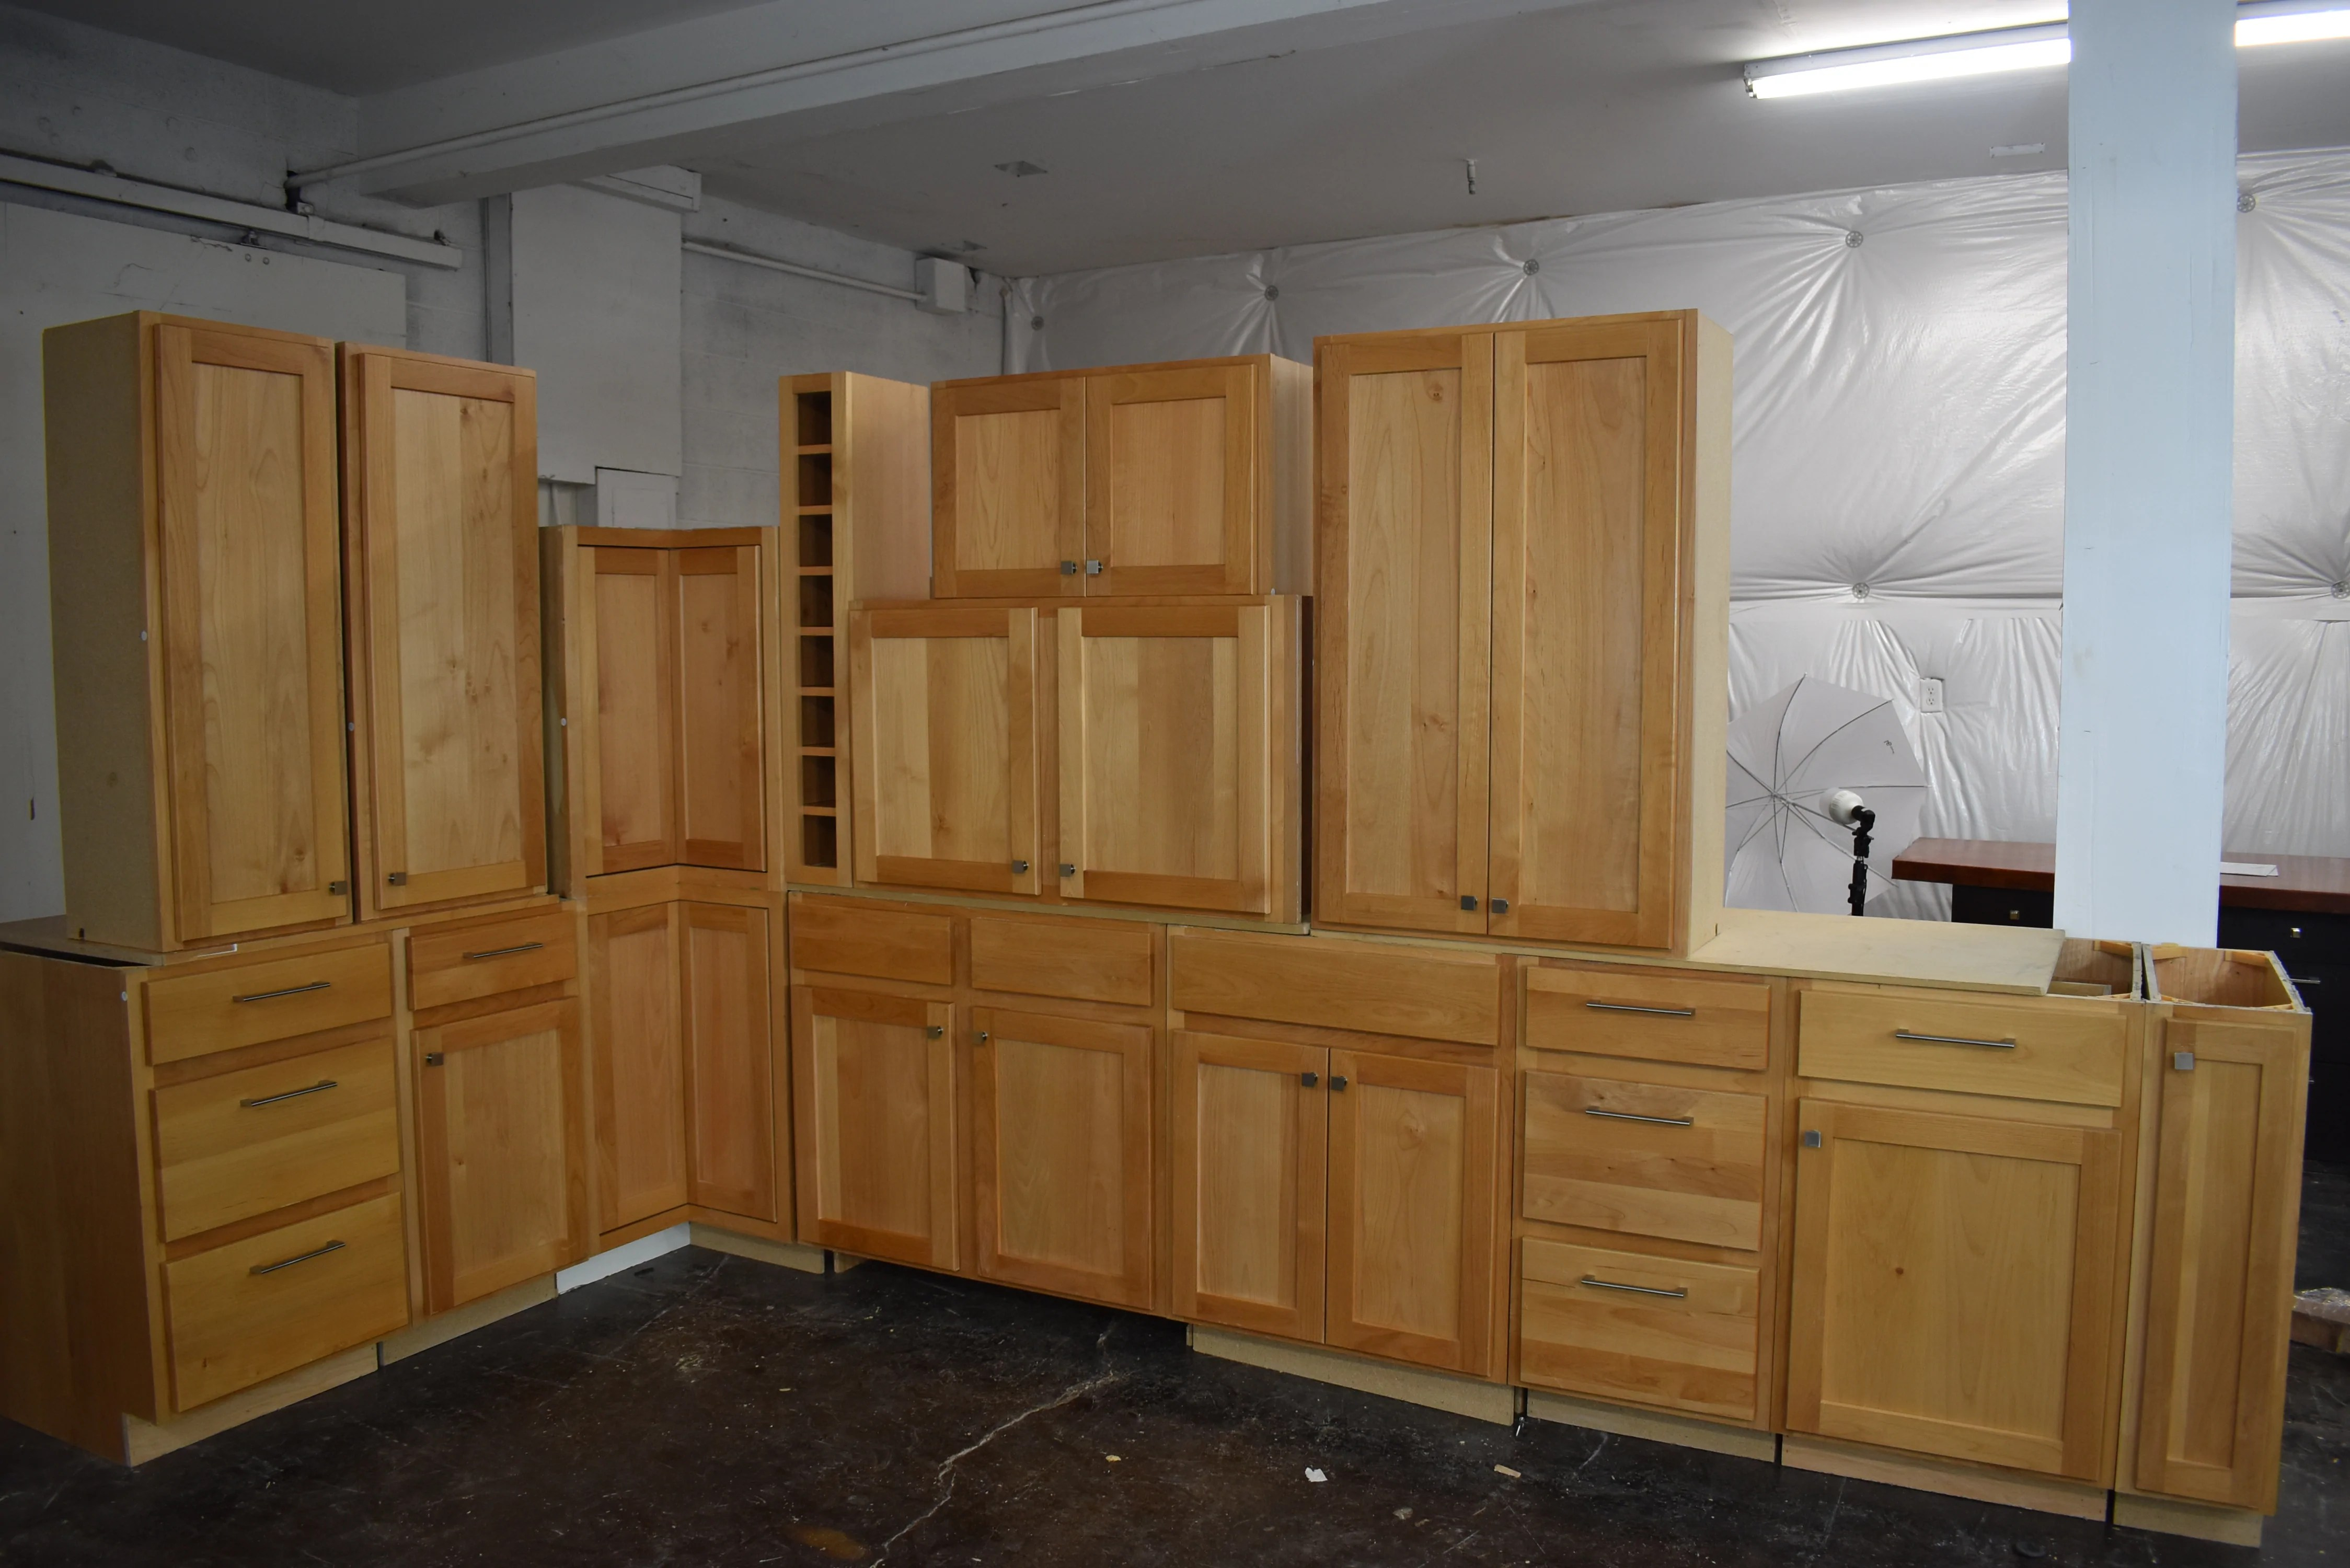 kitchen cabinet set countertop resurfacing natural shaker birch with brushed nickel hardware and plywood boxes